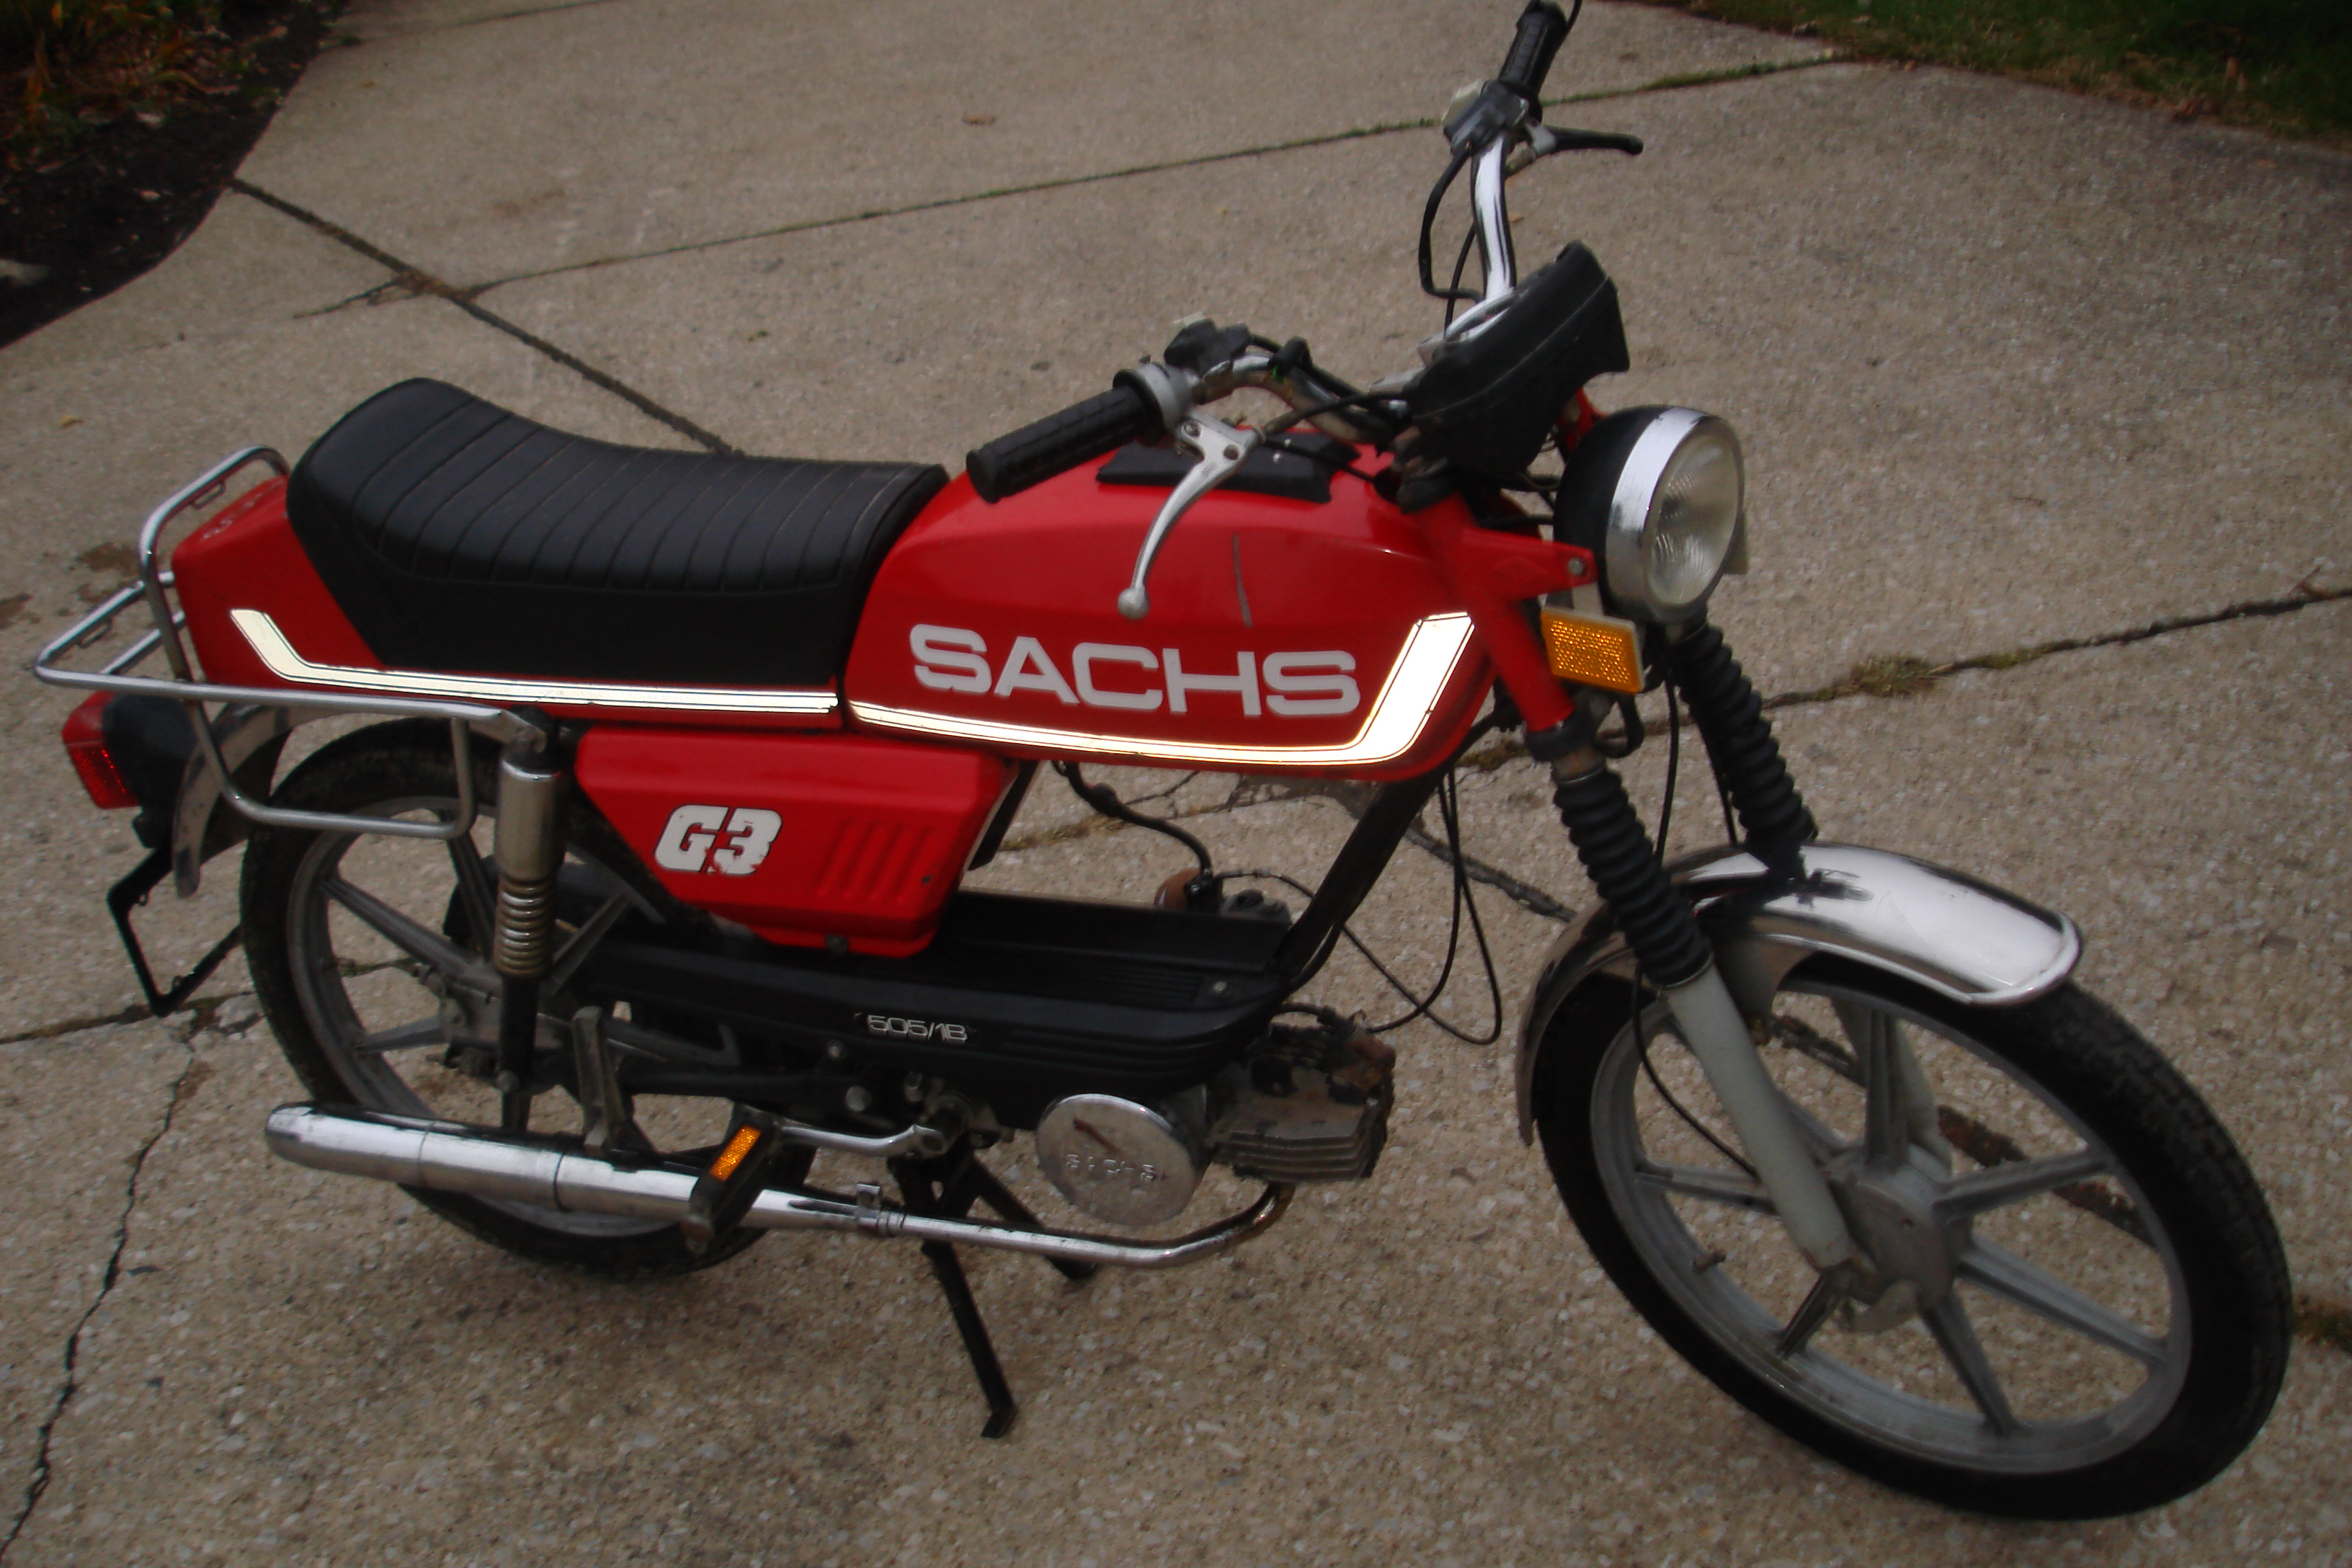 For sale 79 Sachs Prima G3 toptank by targa03lx — Moped Army